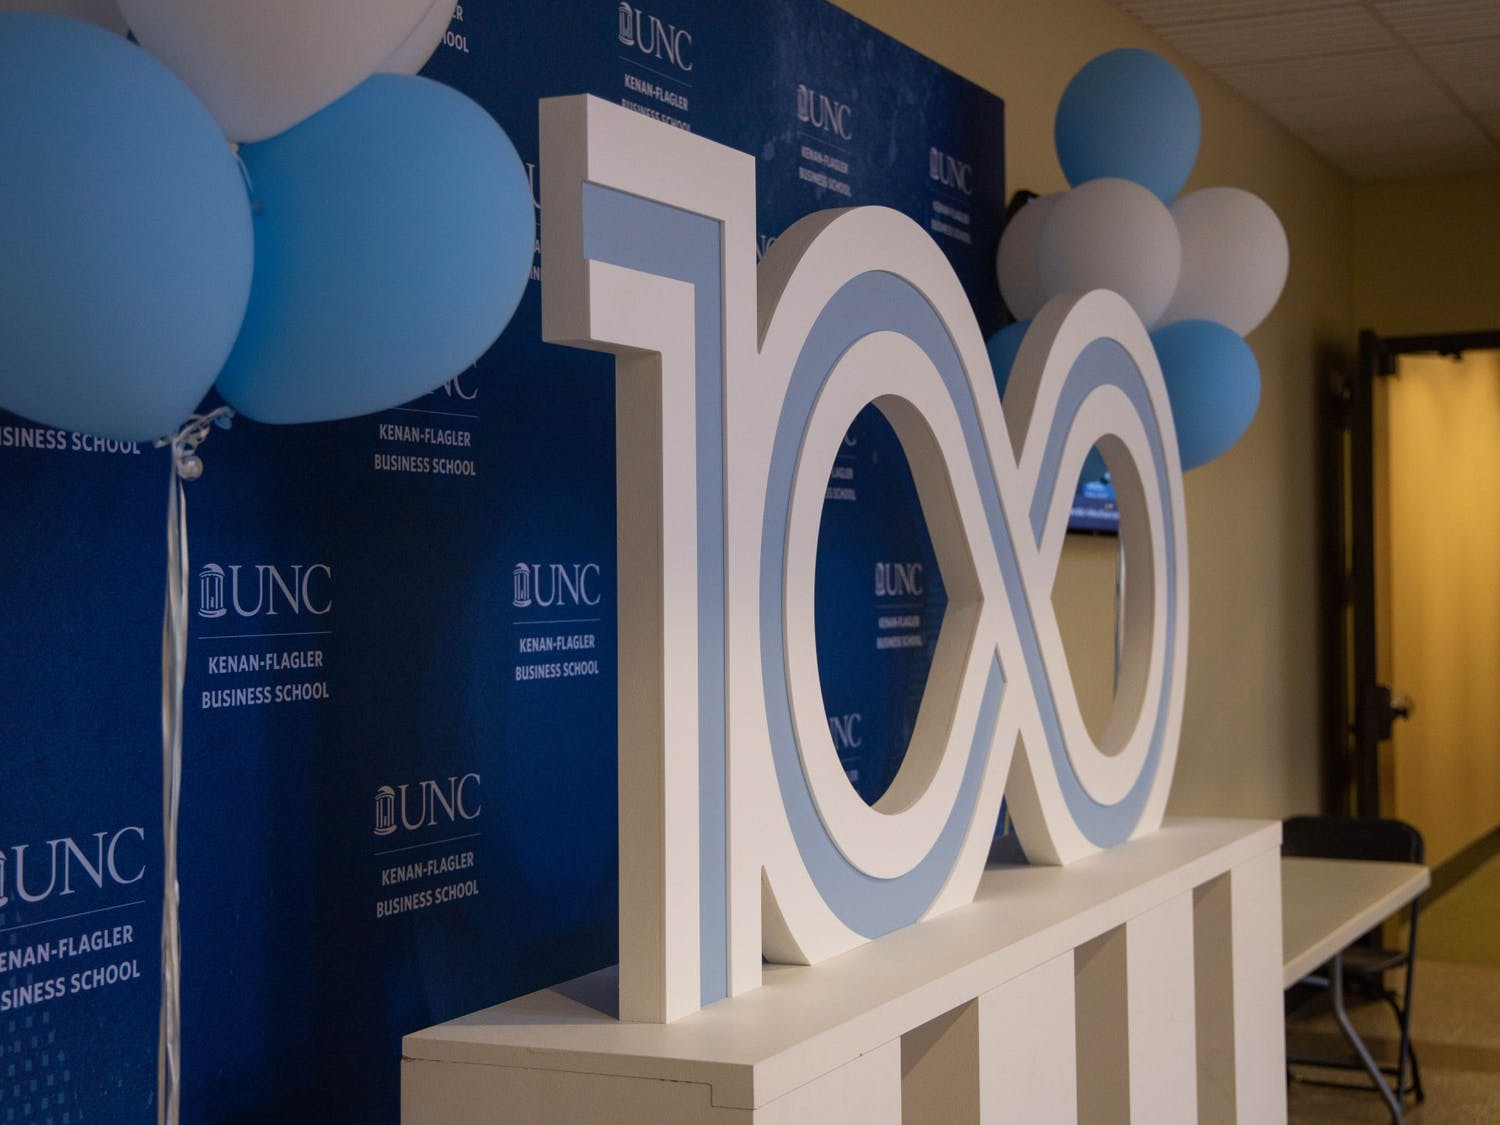 A display in Koury Auditorium honors the 100th anniversary of the Kenan-Flagler Business School. The school will celebrate its centennial here with a time capsule event on Thursday, Dec. 5, 2019 from 12 to 1 p.m.